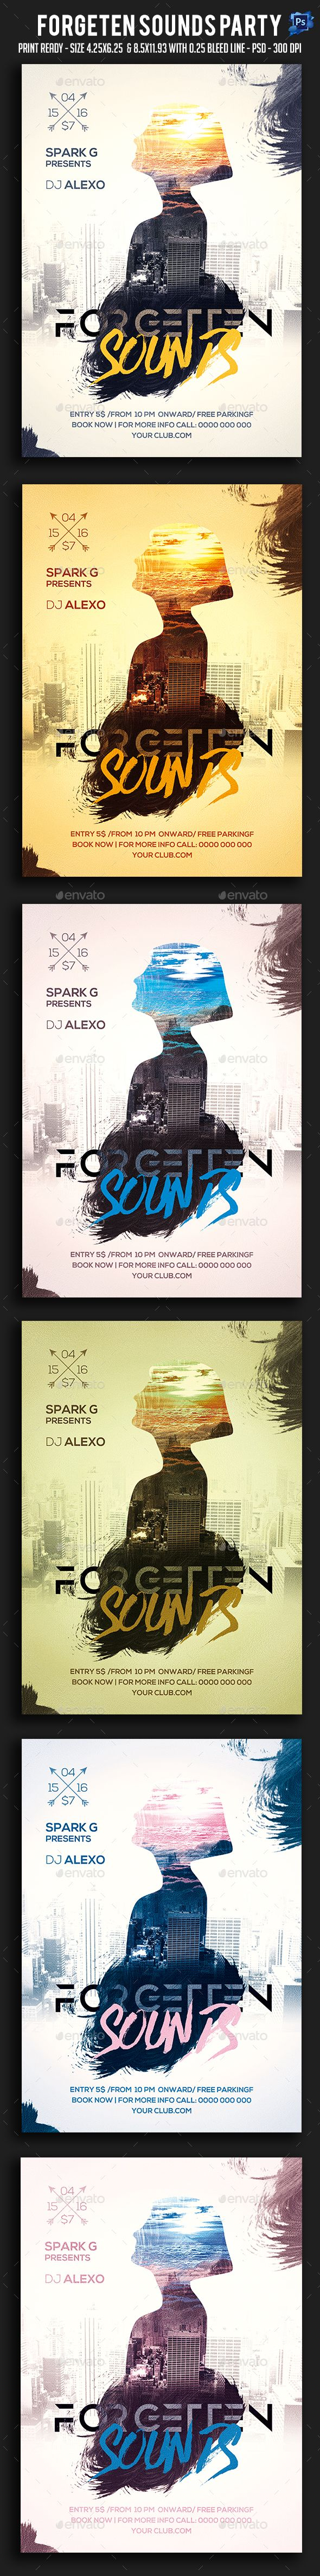 Forgeten Sounds Party Flyer  — PSD Template #trance #dj • Download ➝ https://graphicriver.net/item/forgeten-sounds-party-flyer/18128291?ref=pxcr